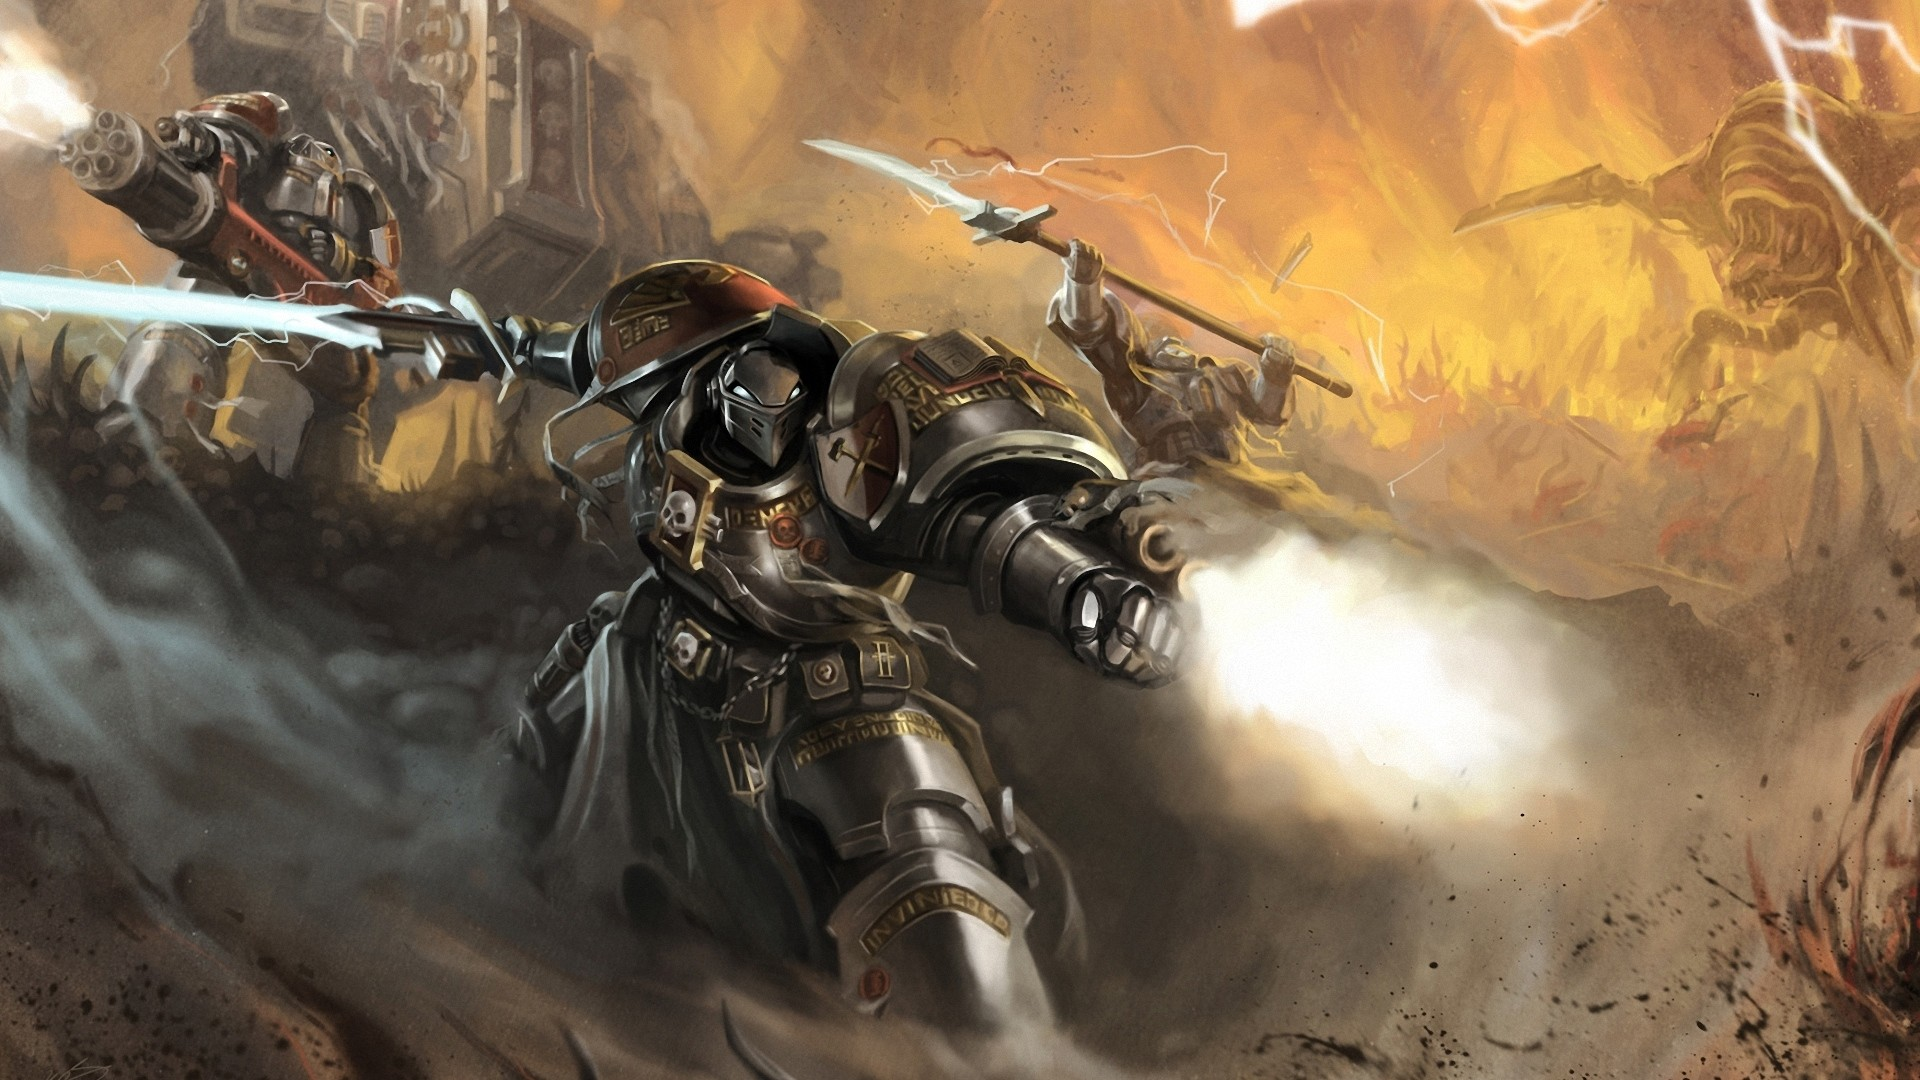 1920x1080 Warhammer k Wallpapers Wallpaper 1920×1080